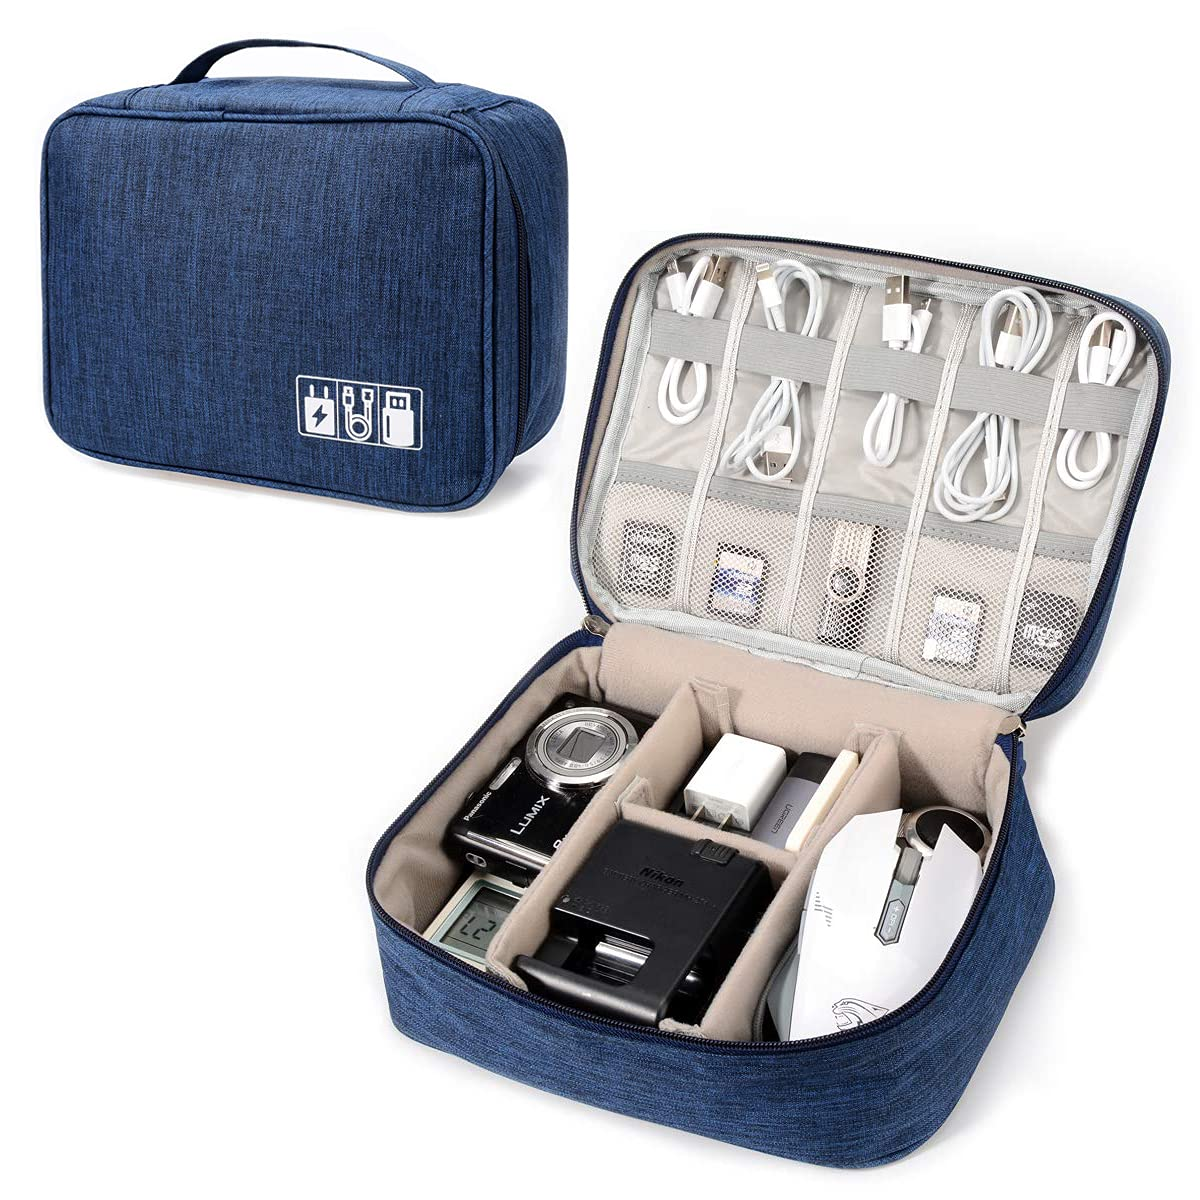 Electronic Organizer Travel Universal Cable Organizer Electronics Accessories Storage Bag Gadget Gear Cases for iPad Mini, Kindle, Smartphone, Cable, Charger, Power Bank, USB, SD Card (Blue)